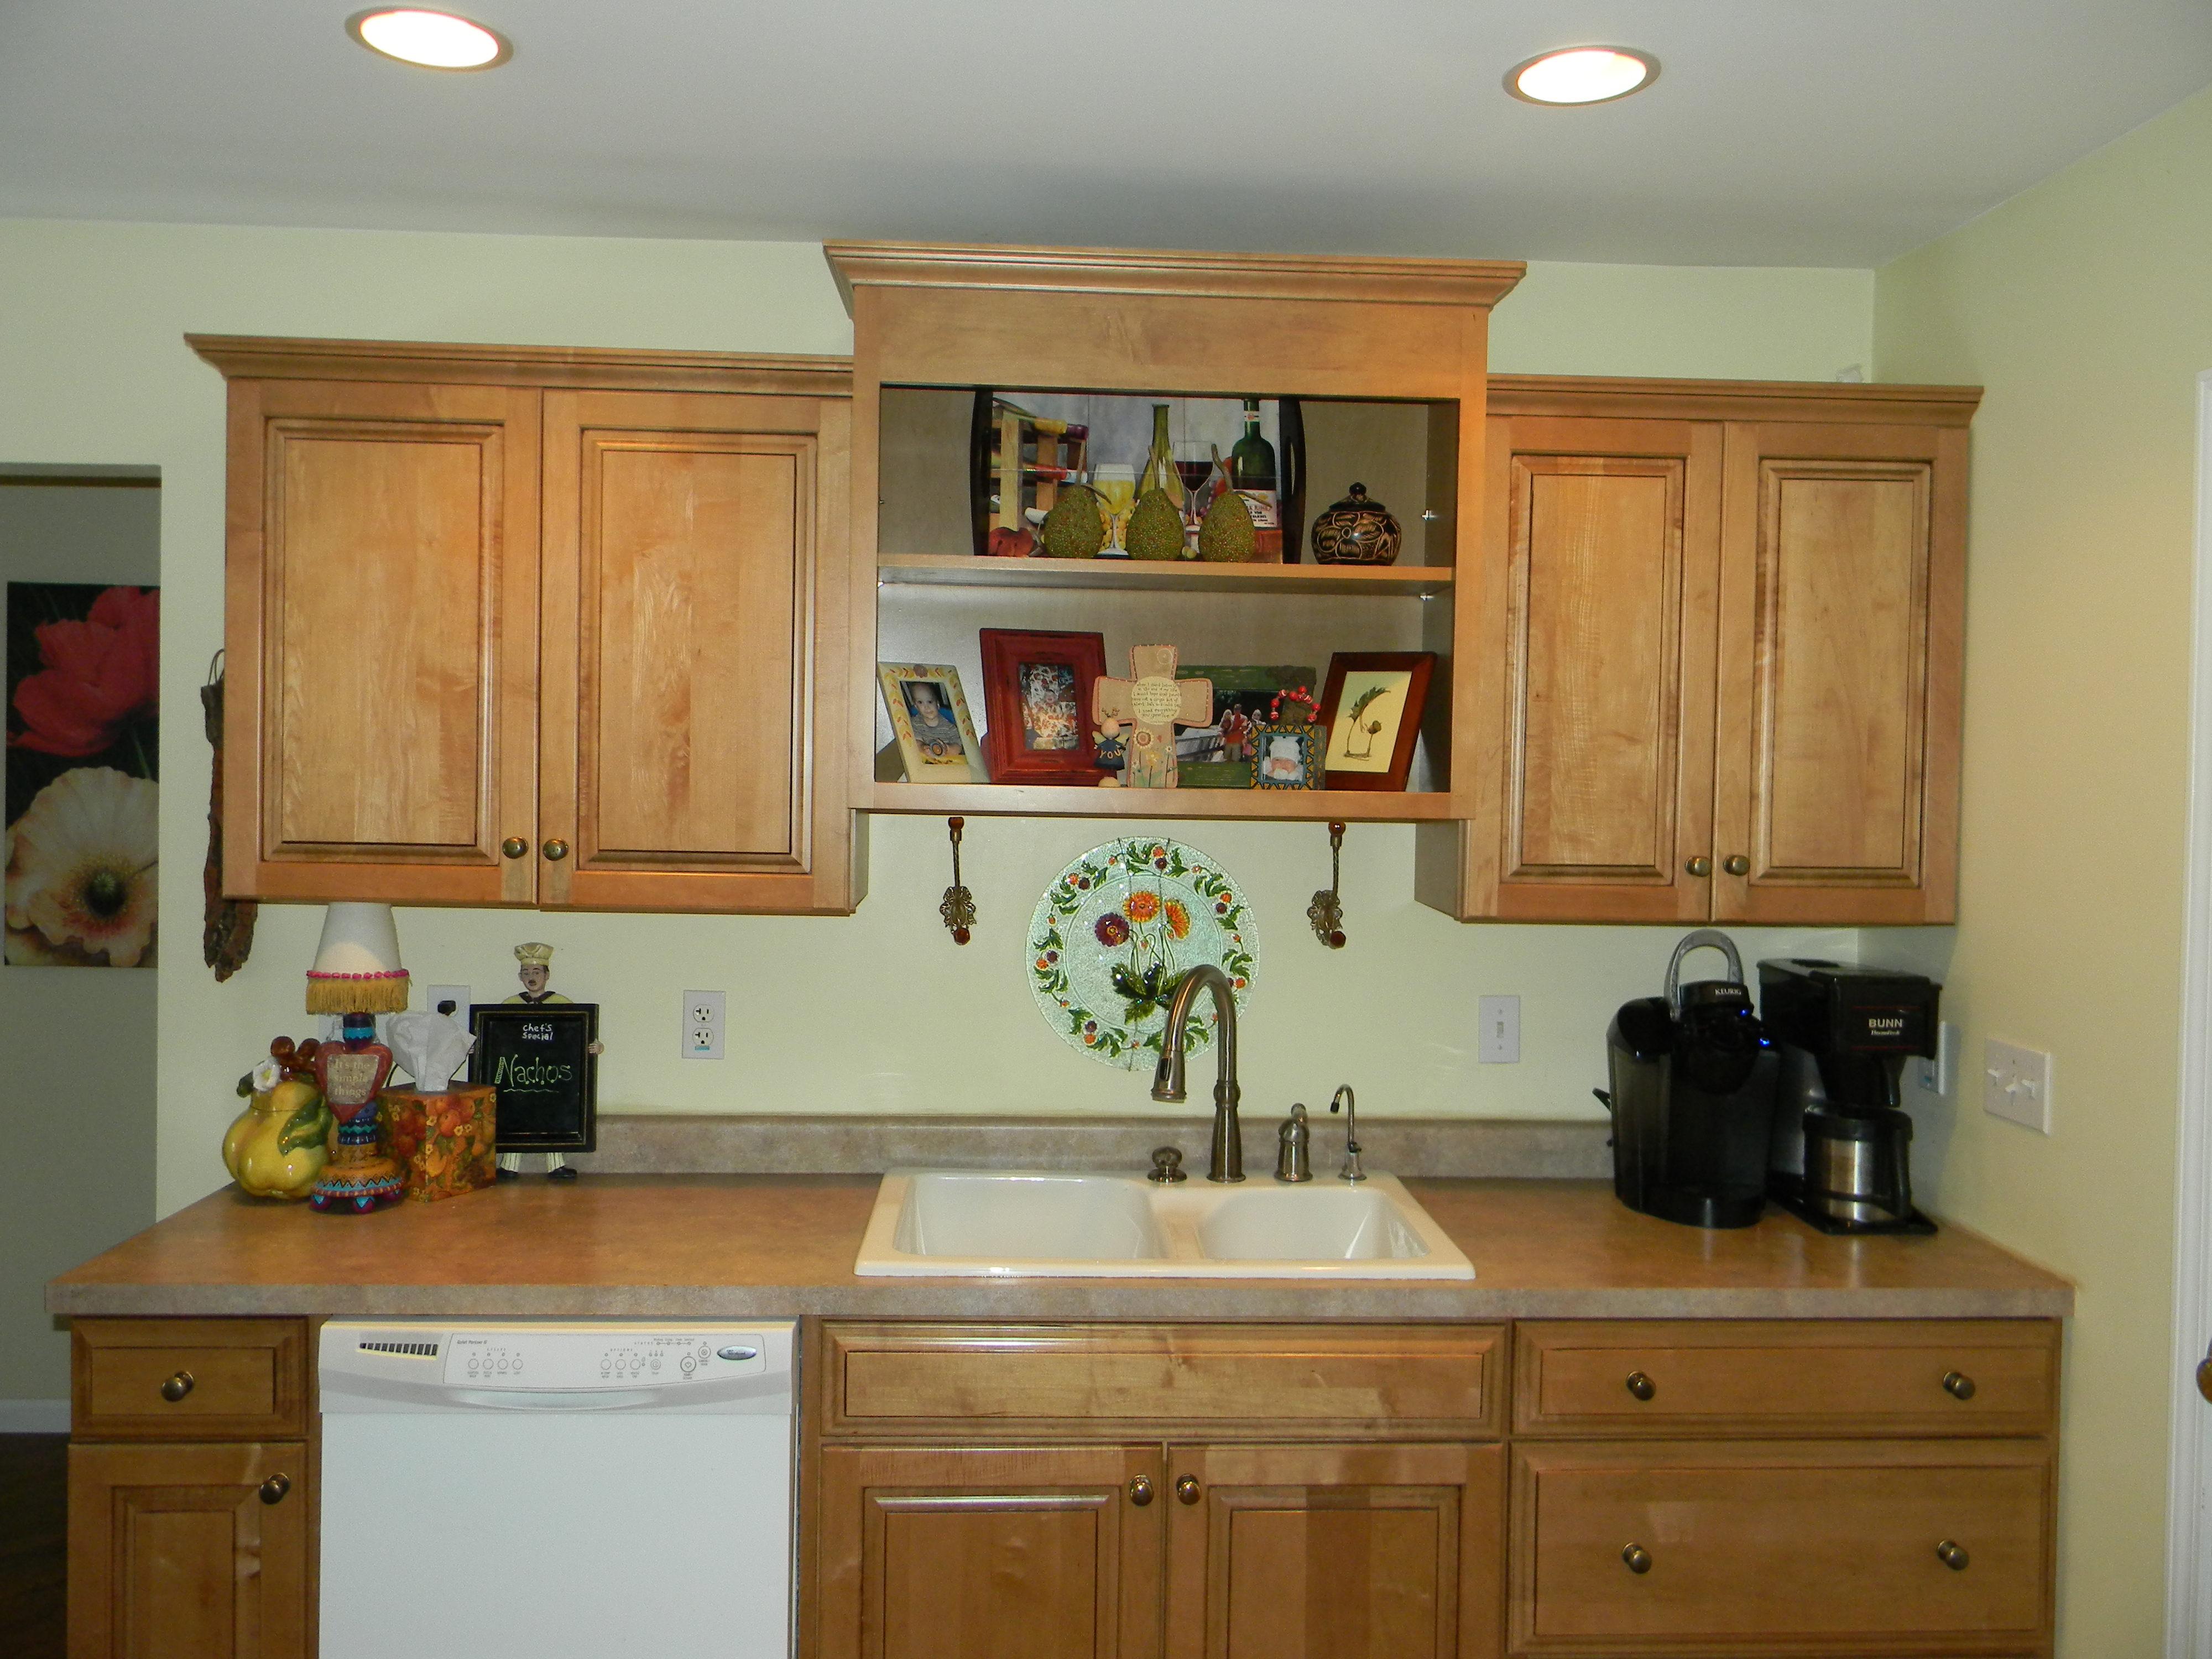 Rustic decorating above kitchen cabinets - Decorating Above Kitchen Cabinets Before And After Pictures And